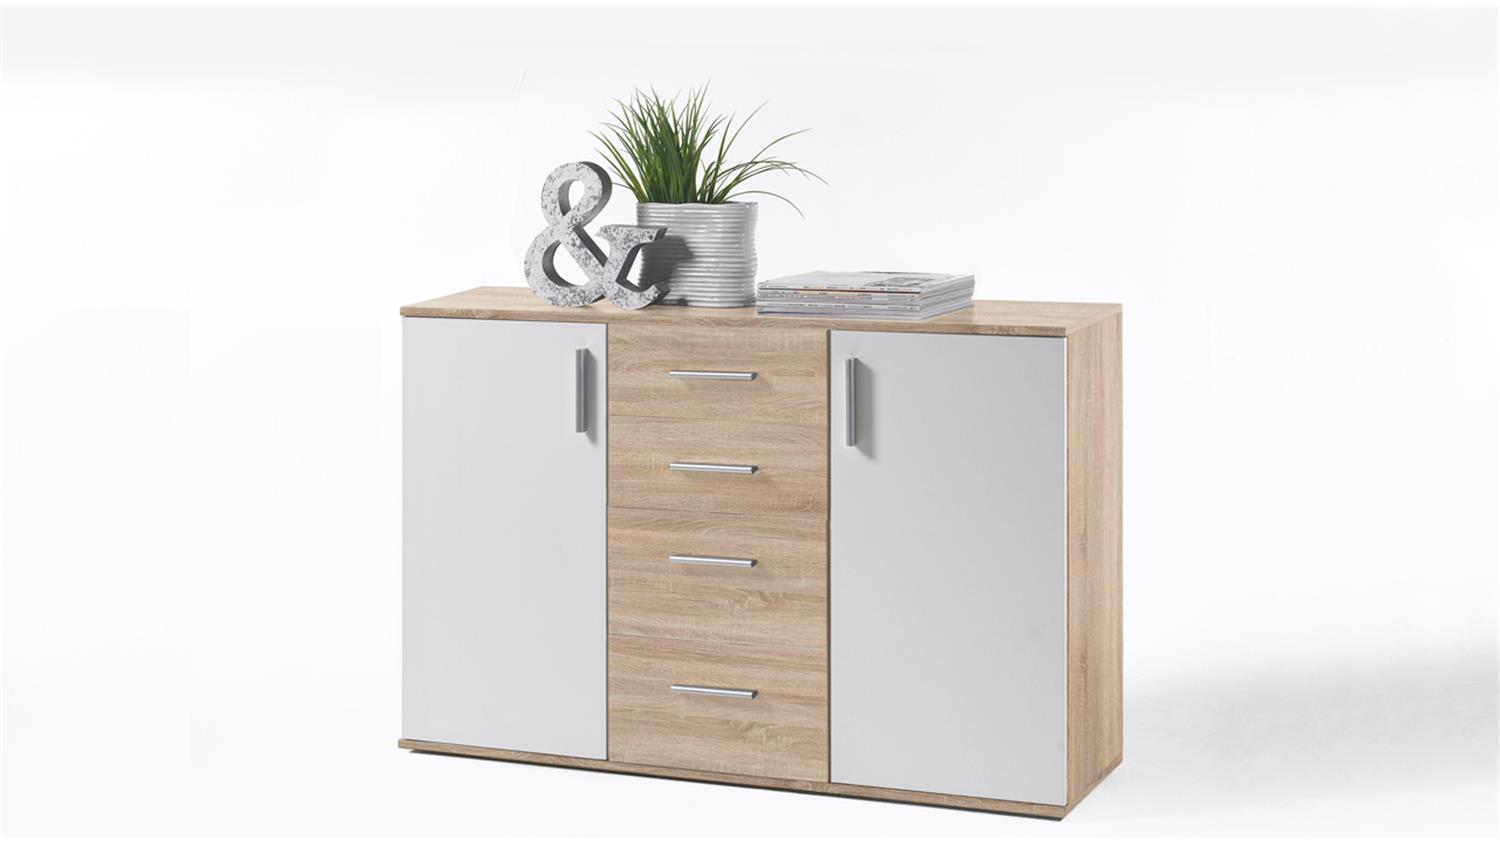 kommode bobby 5 sideboard anrichte 2 t rig sonoma eiche und wei. Black Bedroom Furniture Sets. Home Design Ideas